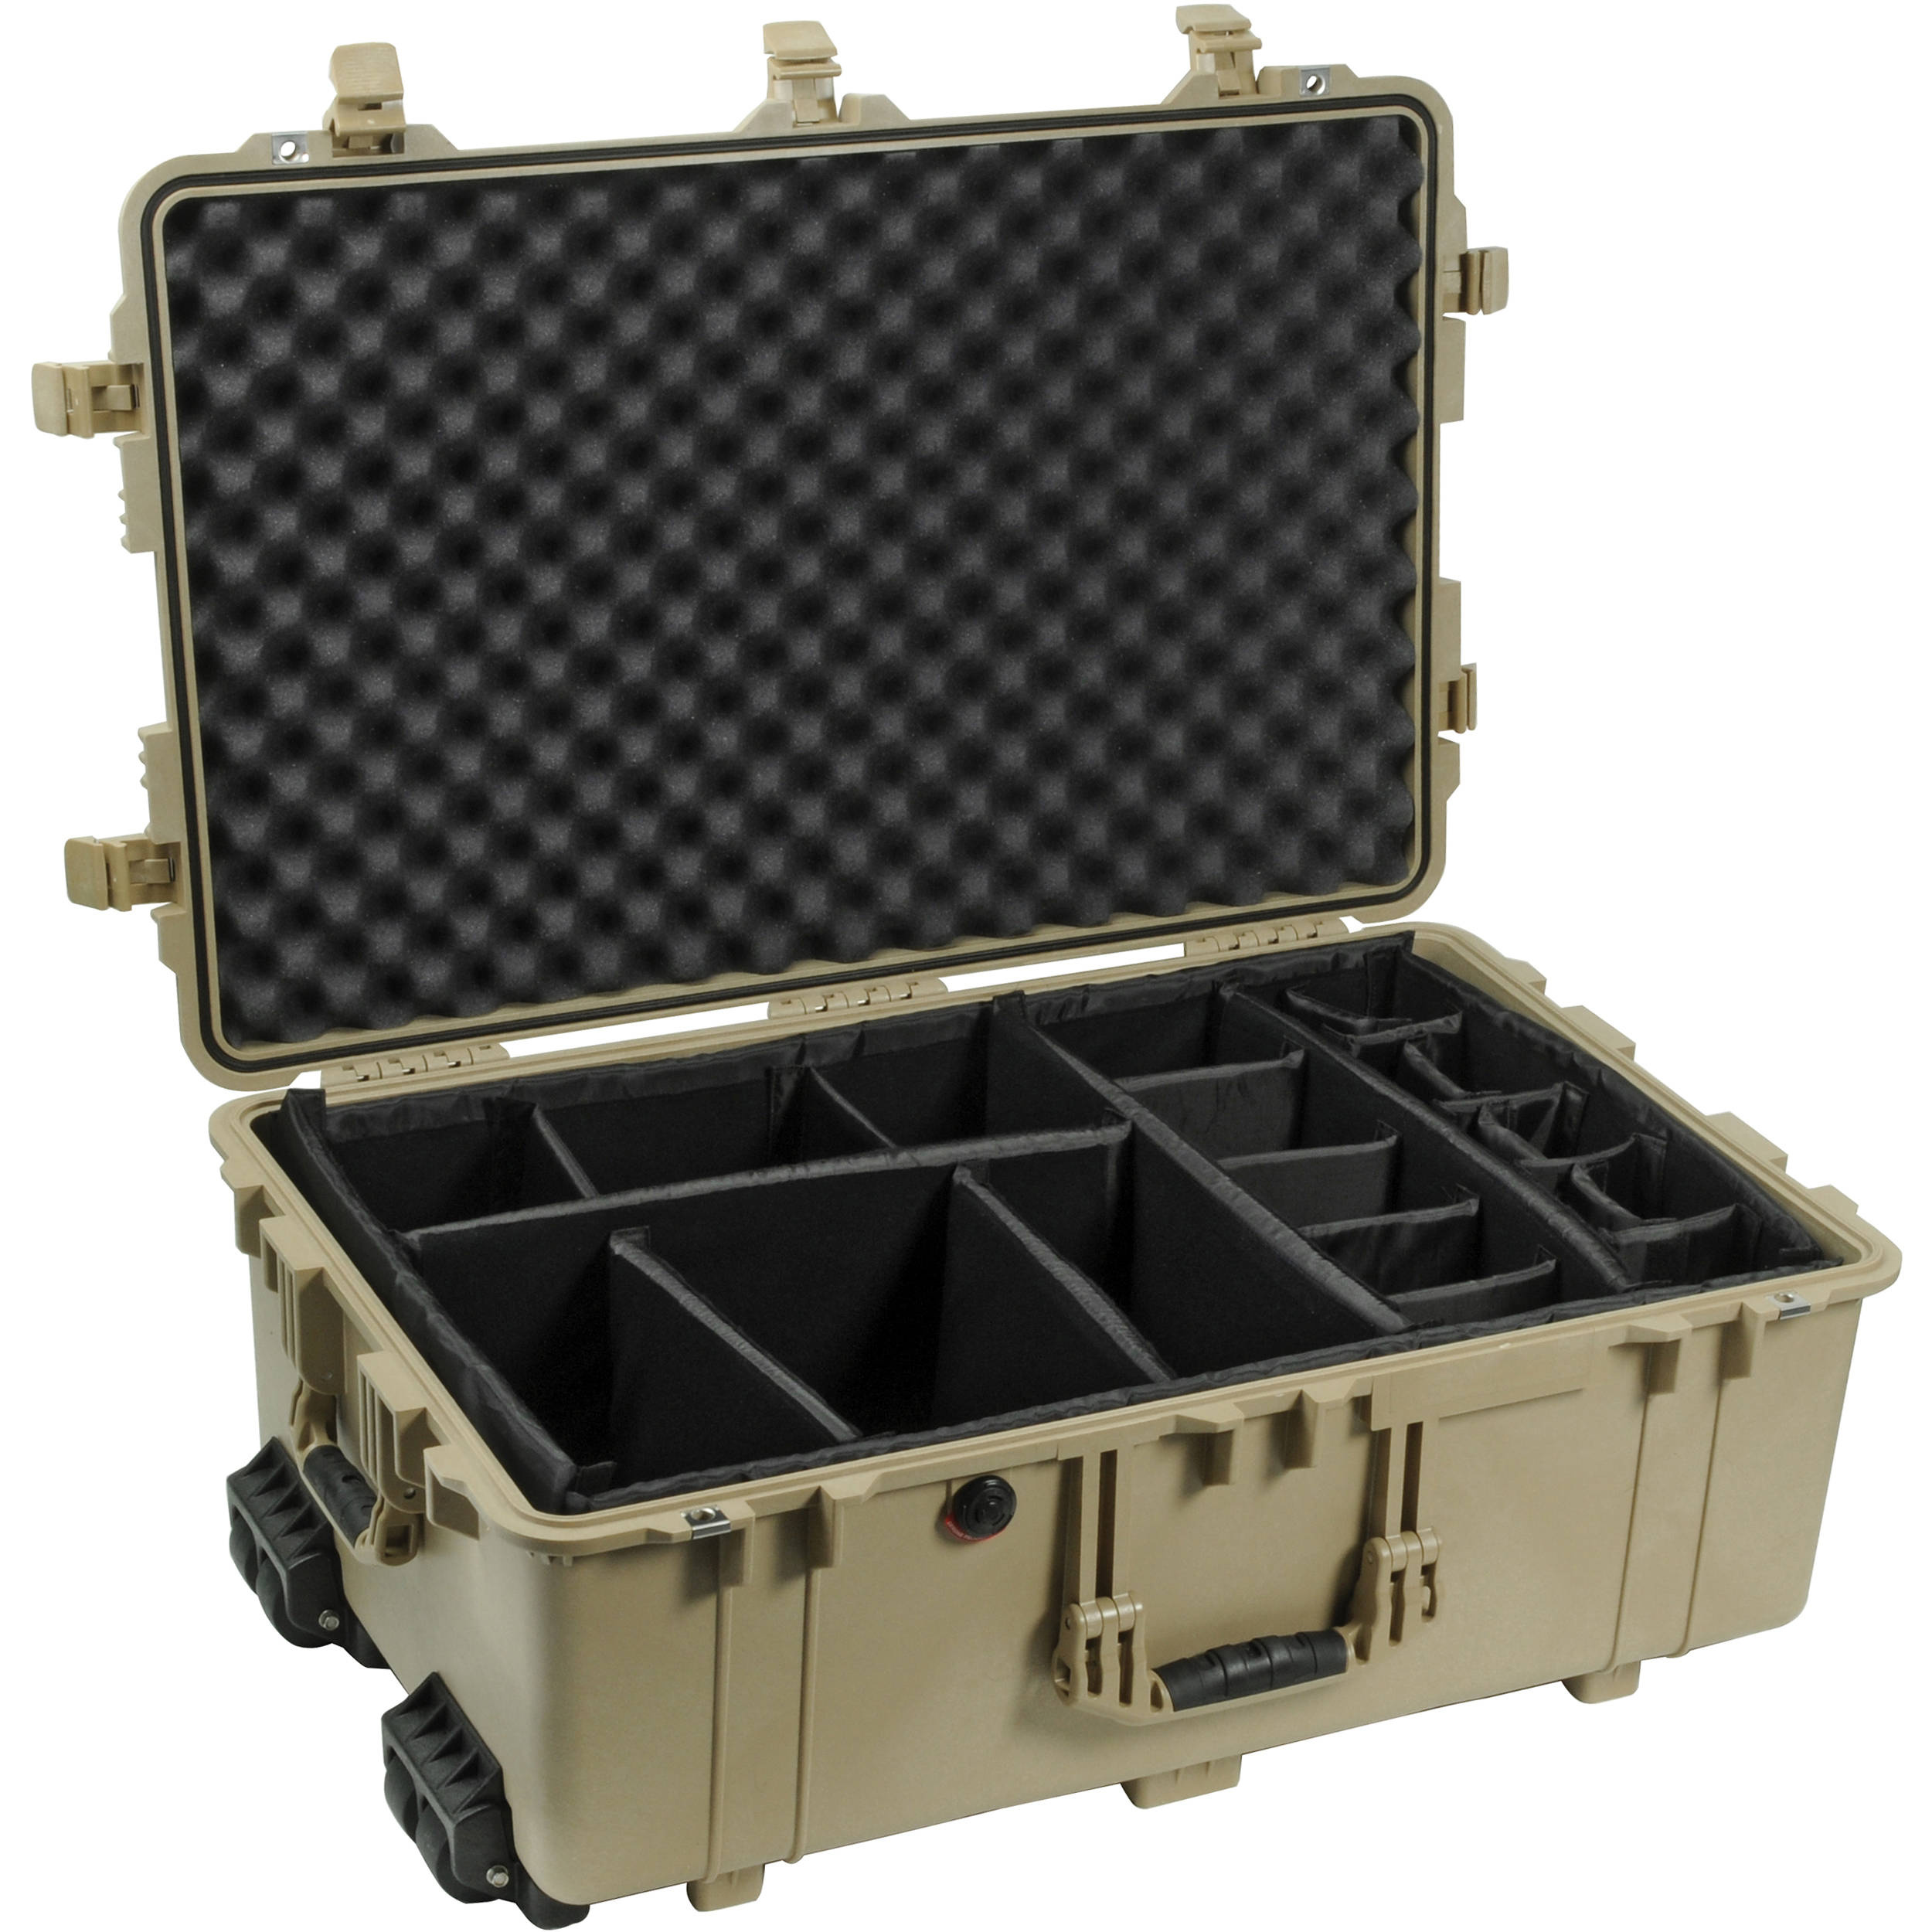 Pelican 1654 Case with Padded Dividers (Desert Tan)